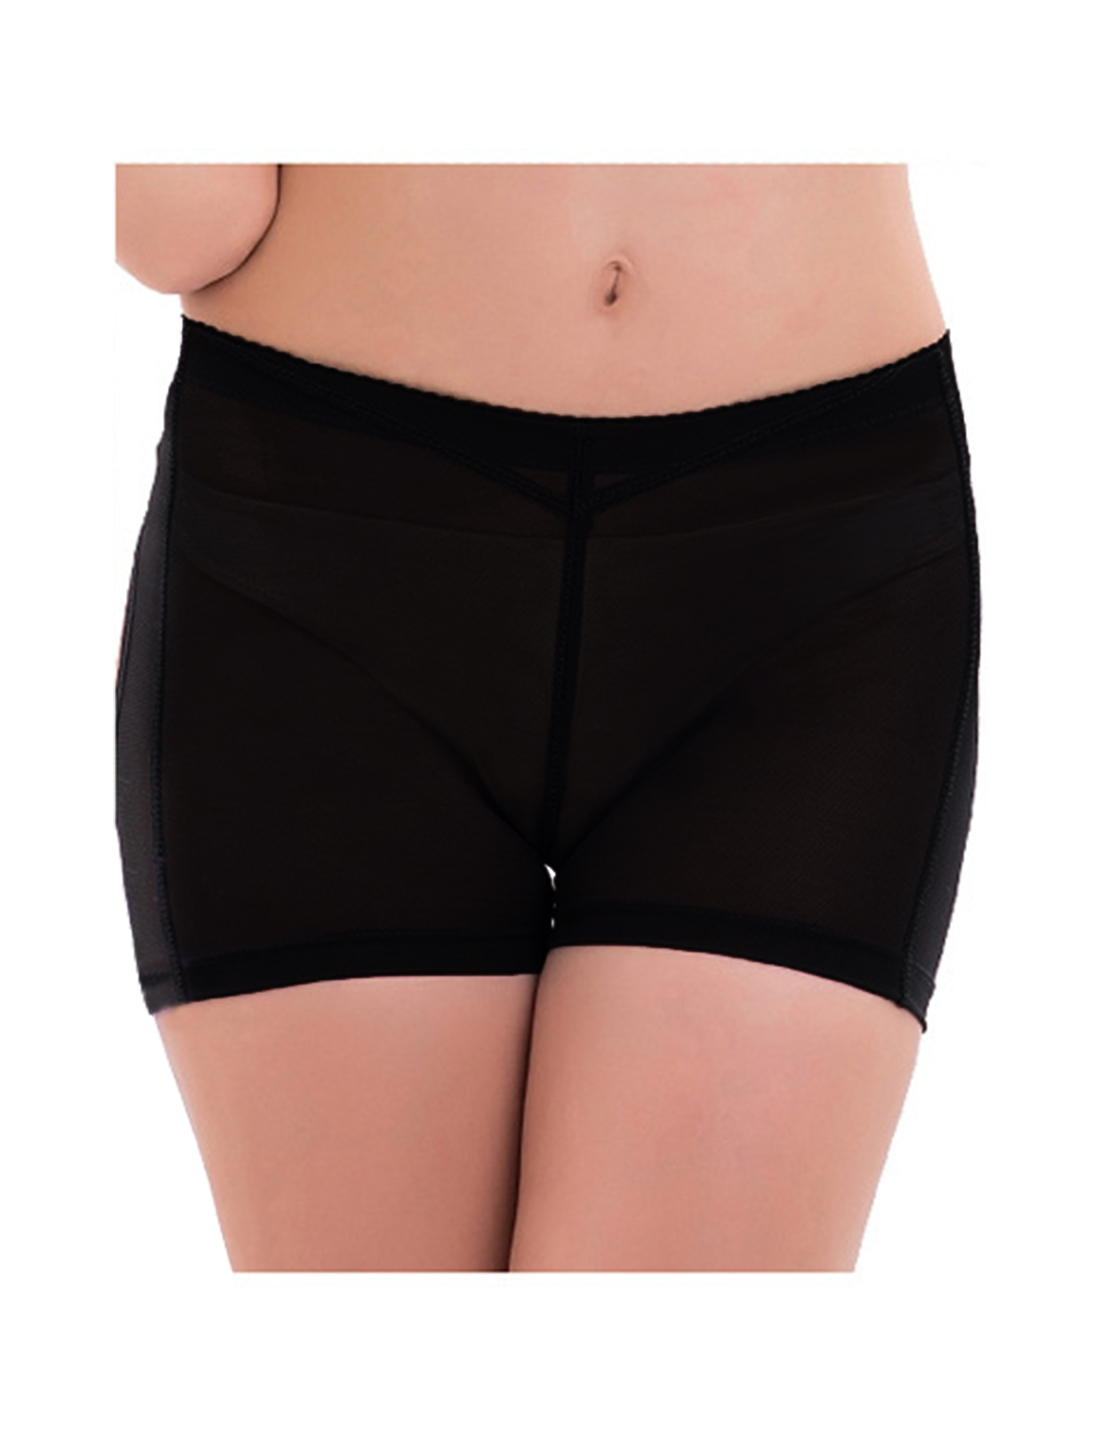 Women Butt Lifter Tummy Control Shapewear Enhancer Boyshort Underwear Black Large